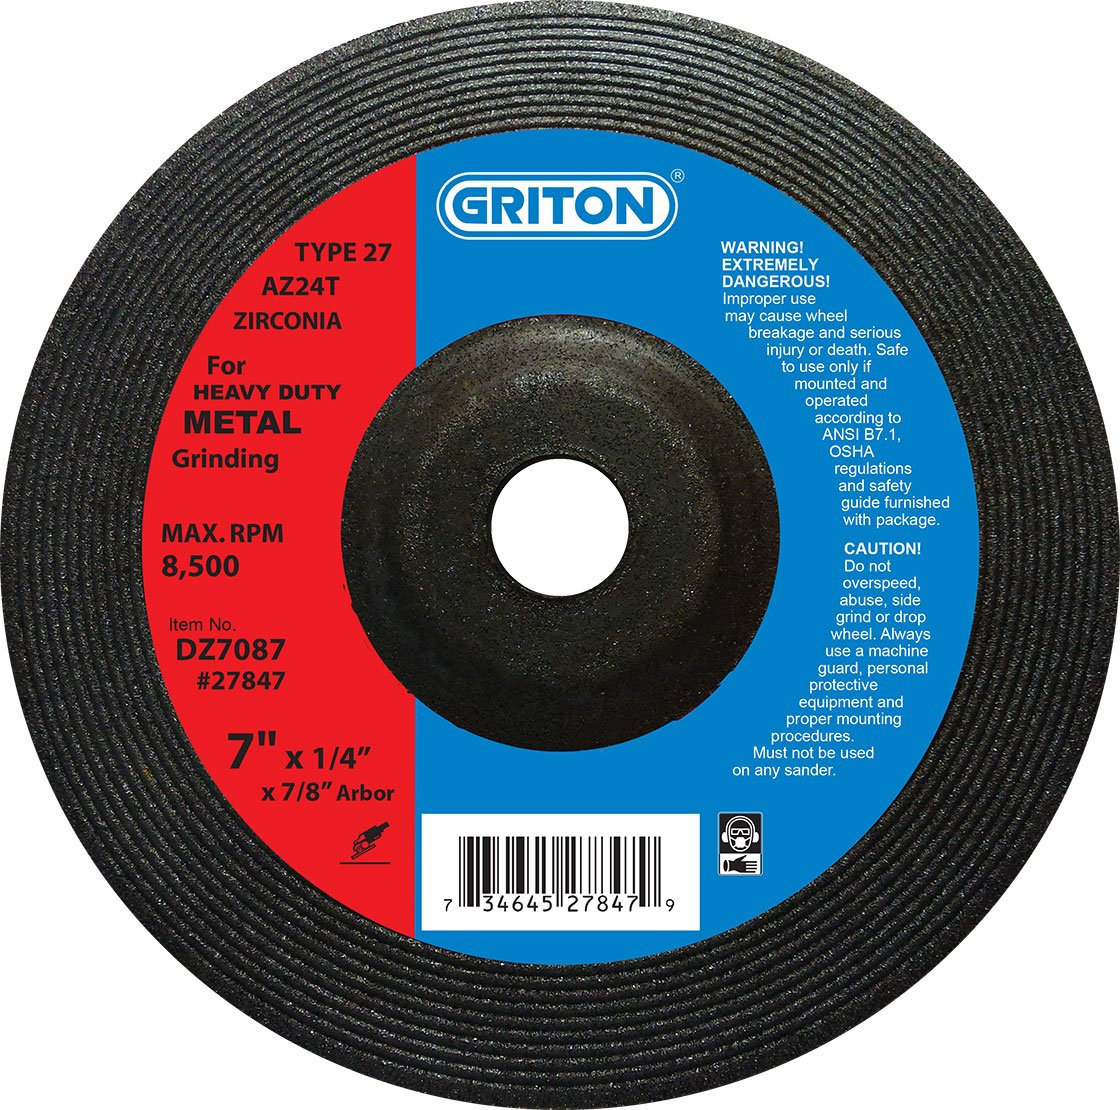 Griton DZ7087 Type 27 Heavy Duty Zirconia Grinding Wheels Used on Metal, Zirconia/Aluminum Oxide, 8500 RPM, 7'' Diameter (Pack of 20)